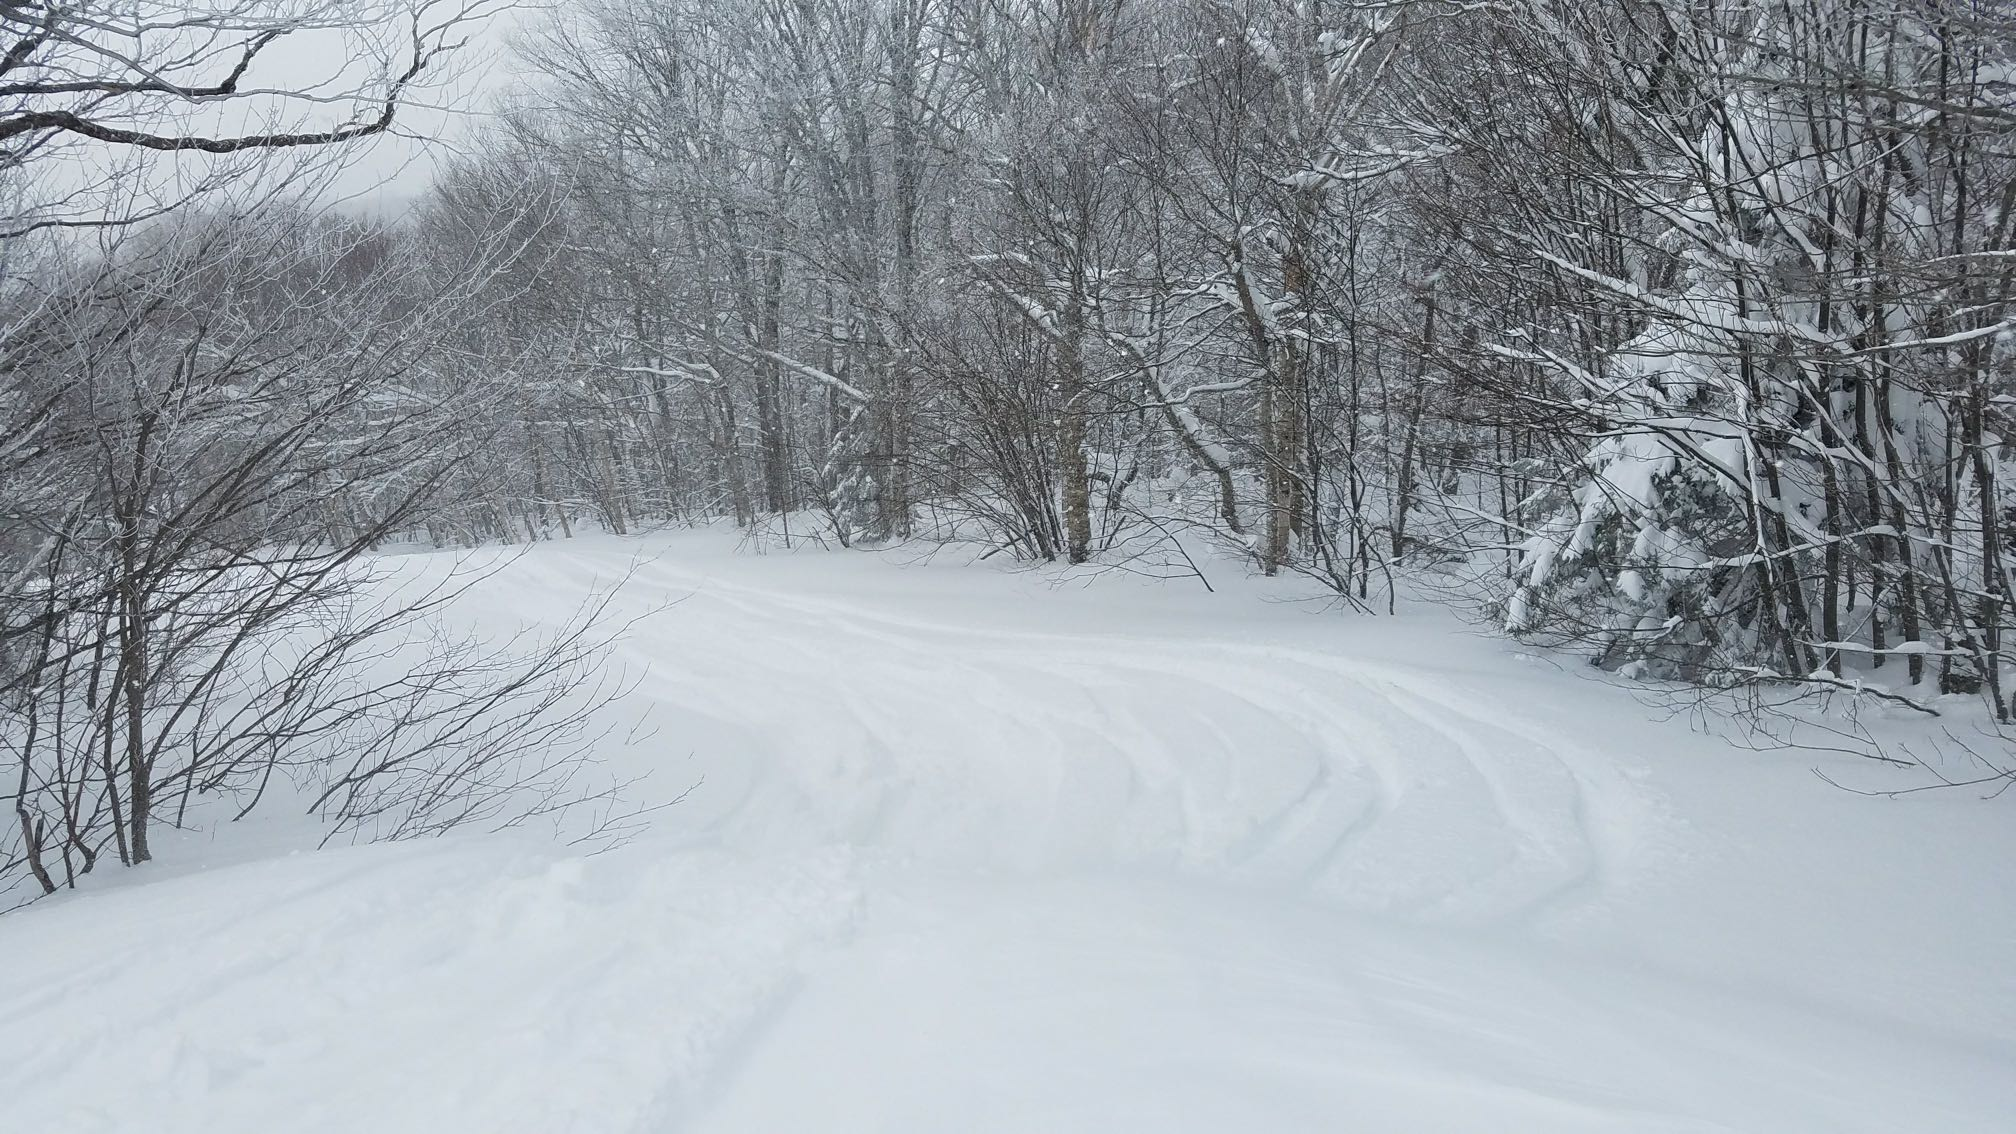 This is the reason for being in Vermont. Fresh barely tracked snow at Pico Mountain, March 2018